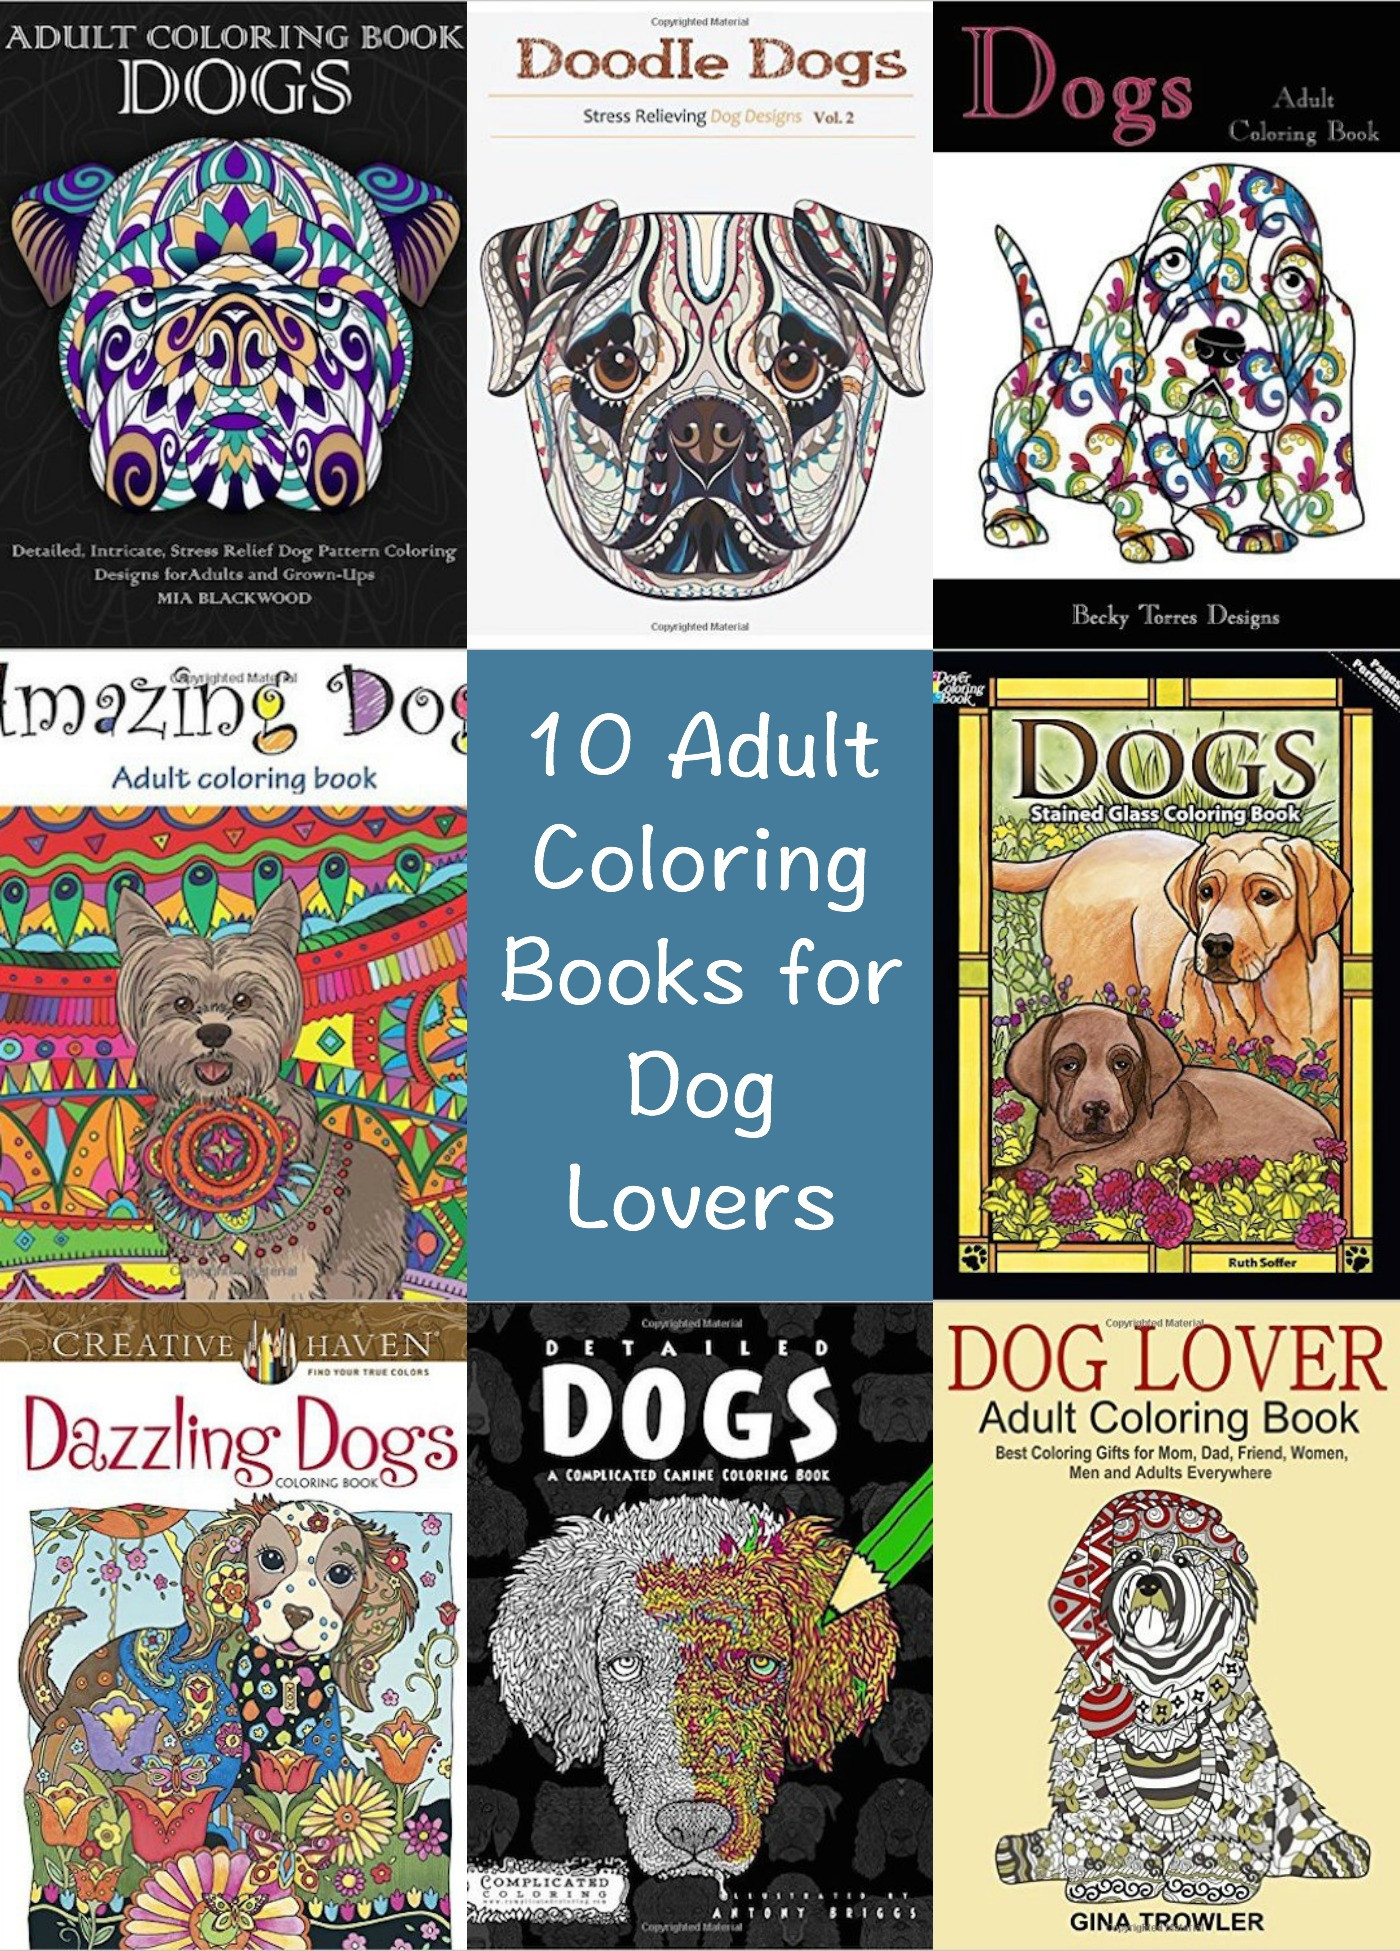 Best ideas about Adult Themed Coloring Books . Save or Pin 10 Dog Themed Coloring Books for Adults diycandy Now.